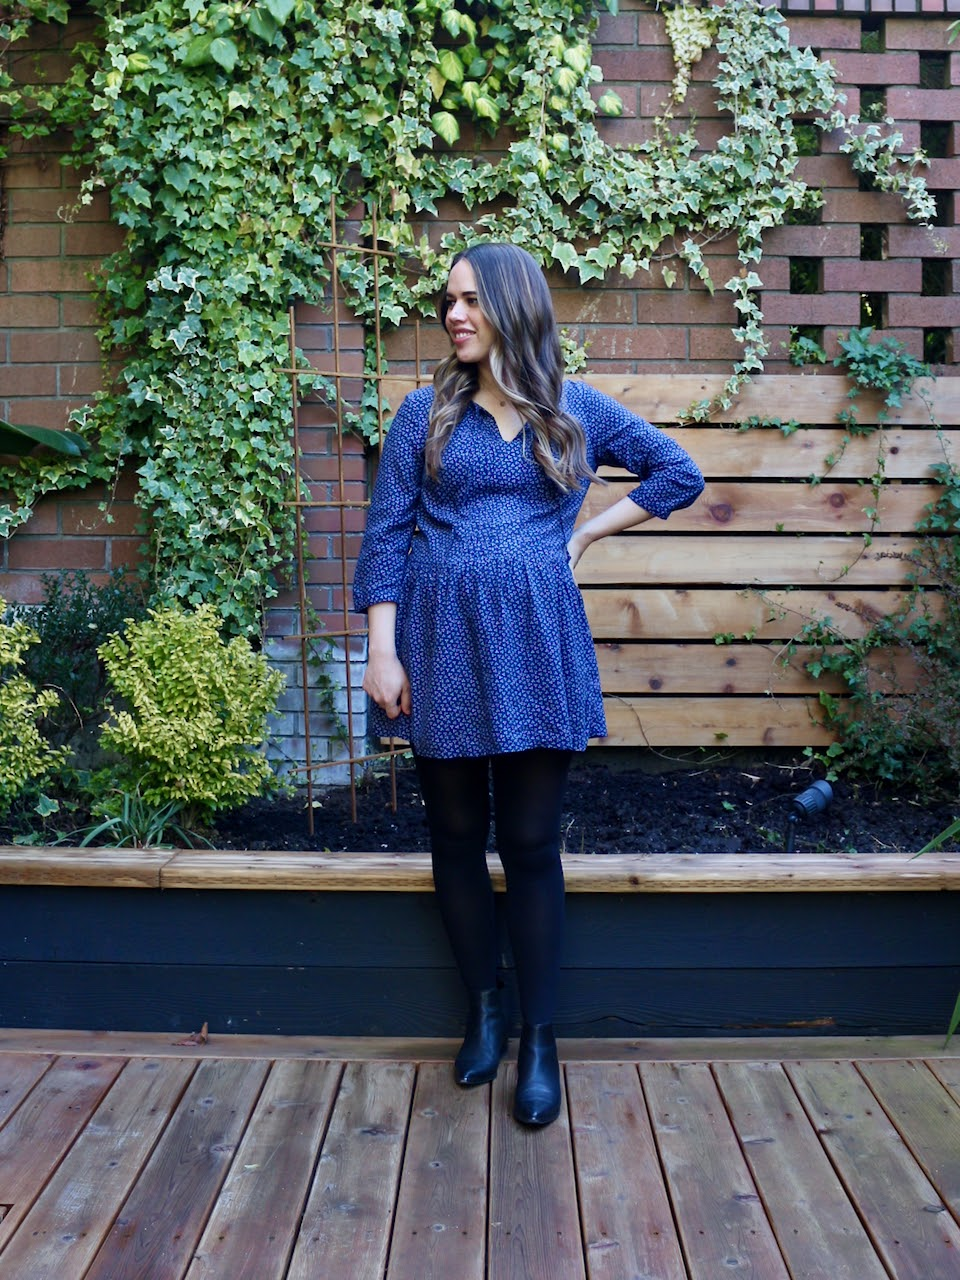 Jules in Flats - Printed Tie-Neck Swing Dress (Business Casual Workwear on a Budget)